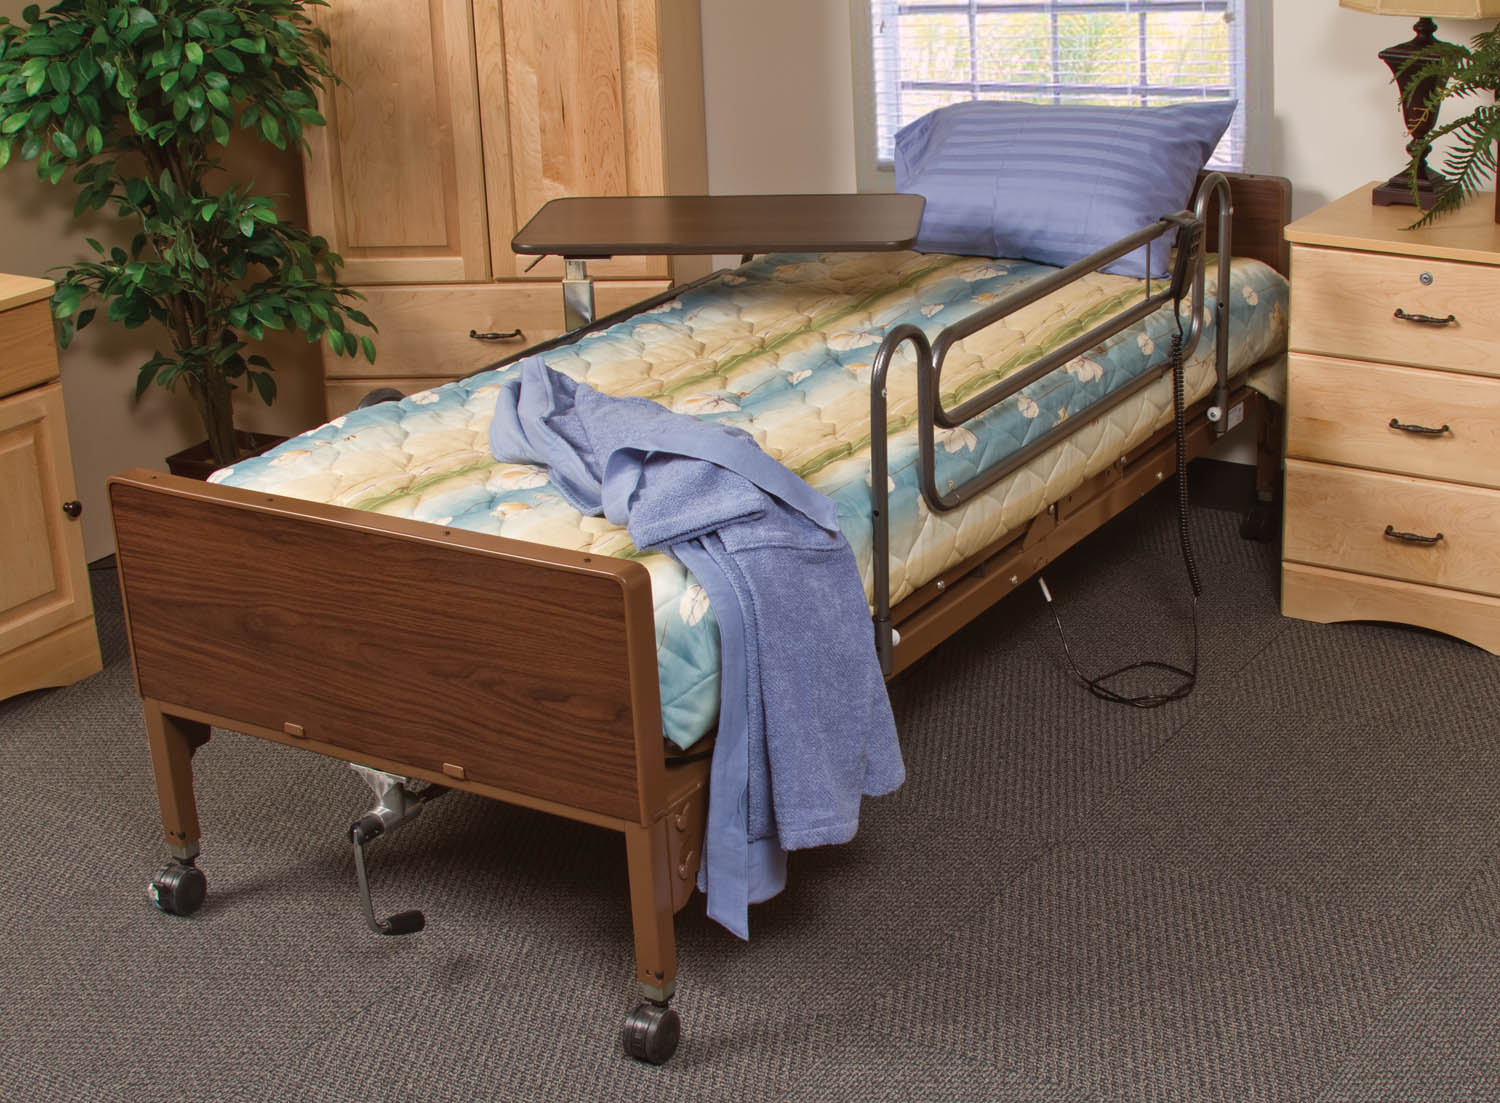 hospital-bed-electric-lite-7